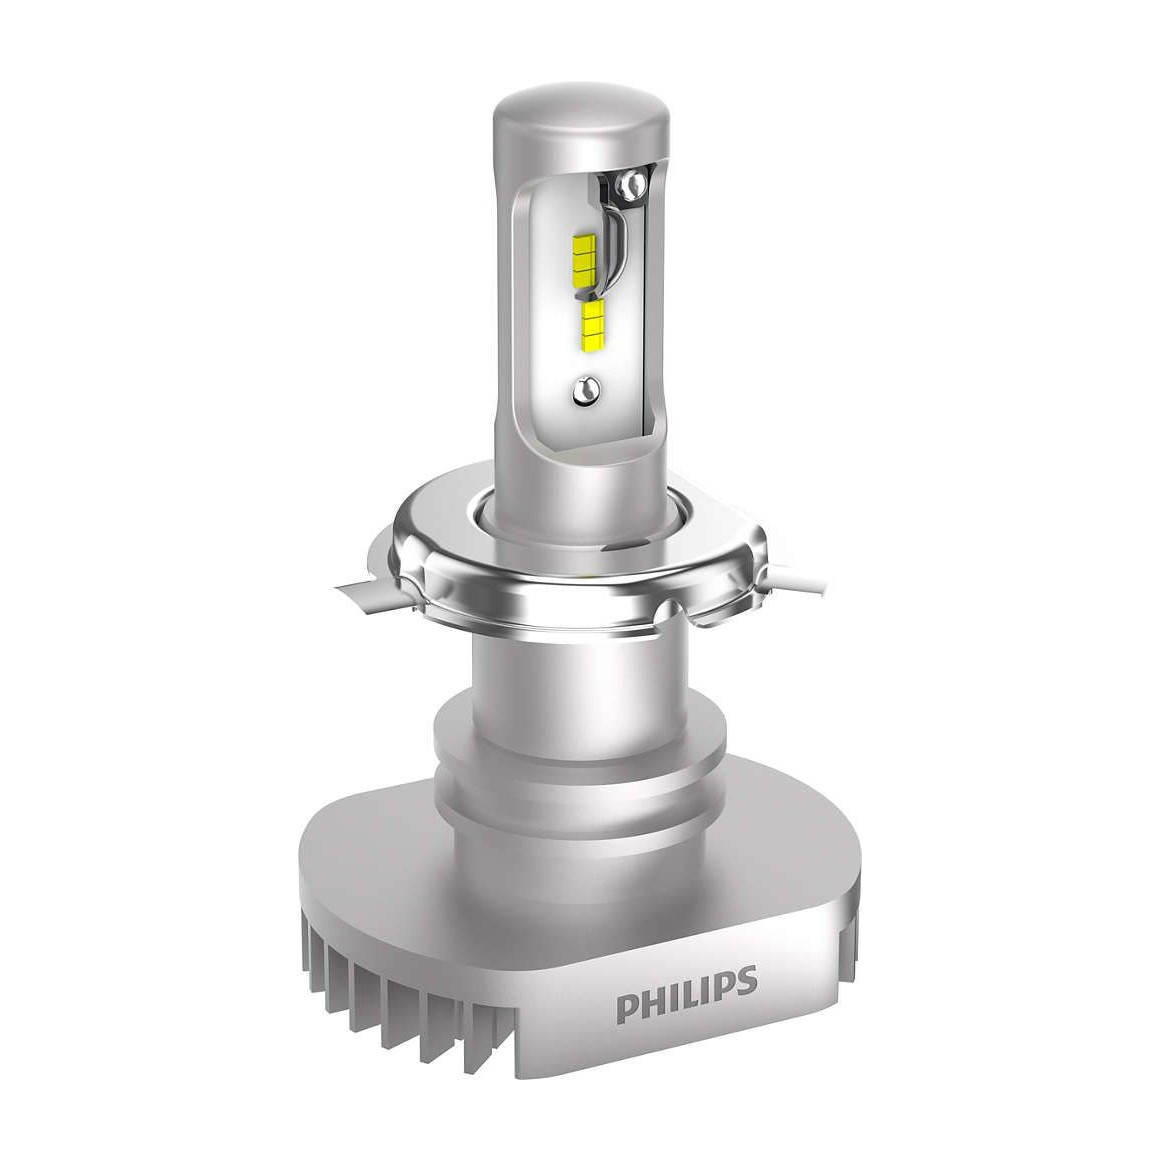 2x Ampoules LED H4 Philips Ultinon 2200Lm 6200K - France-Xenon